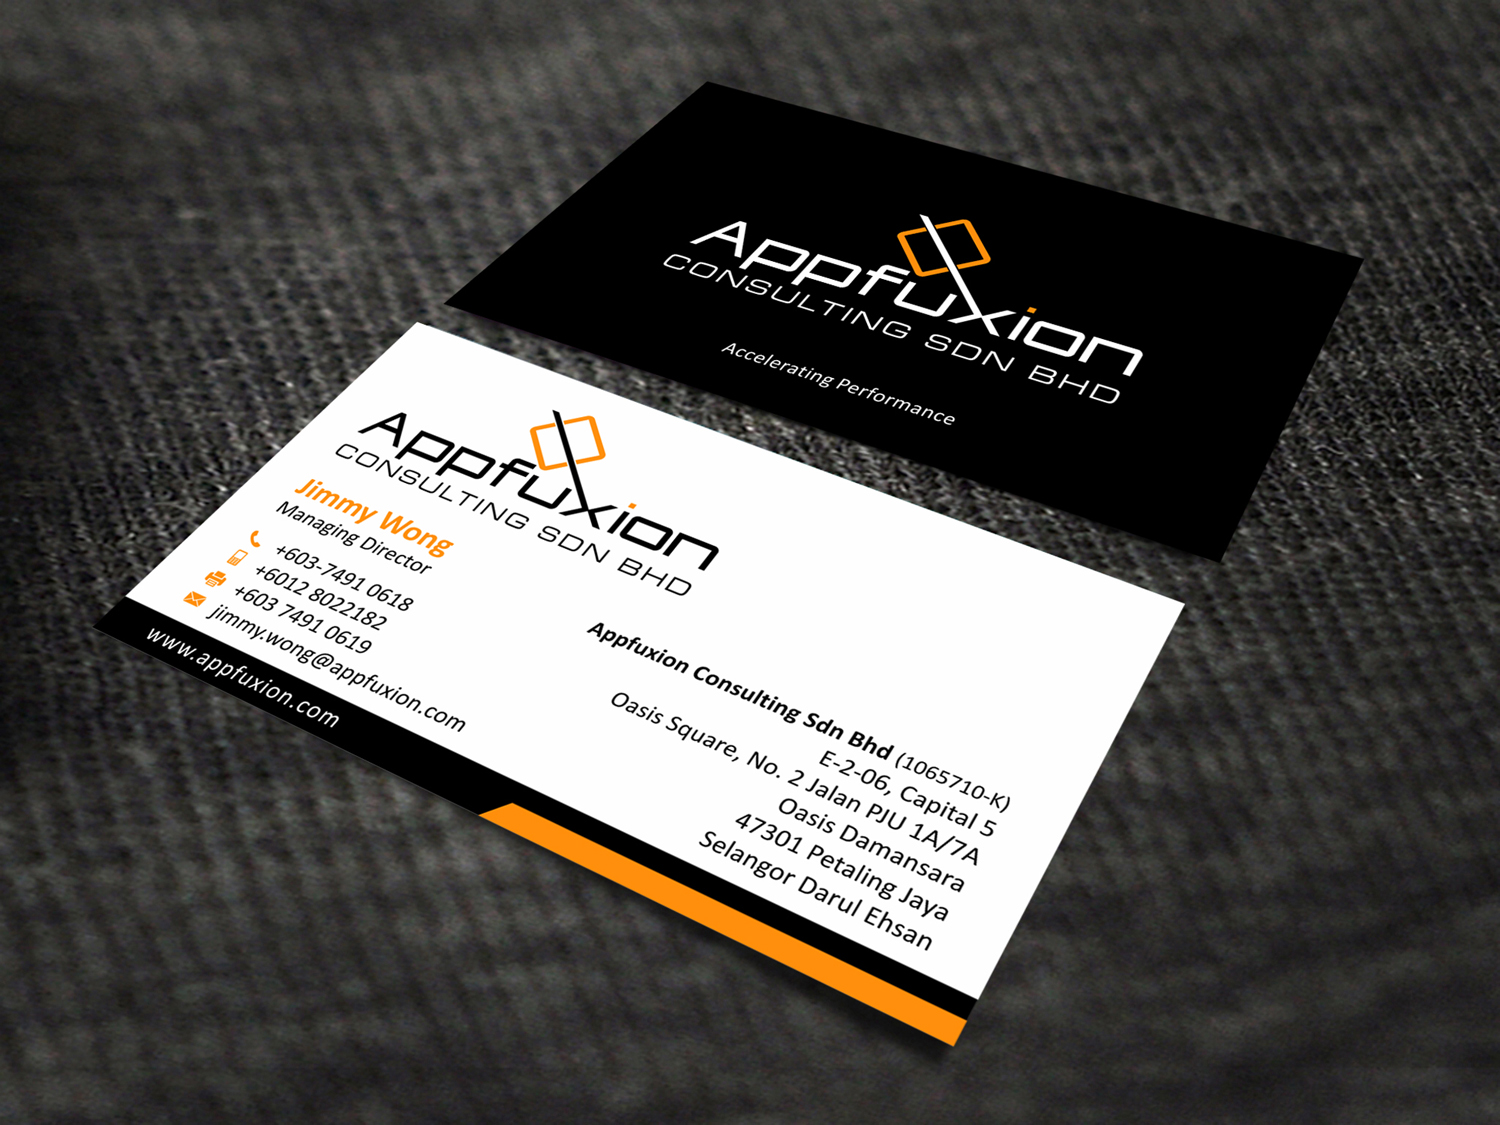 Business Business Card Design for Appfuxion Consulting Sdn Bhd by ...